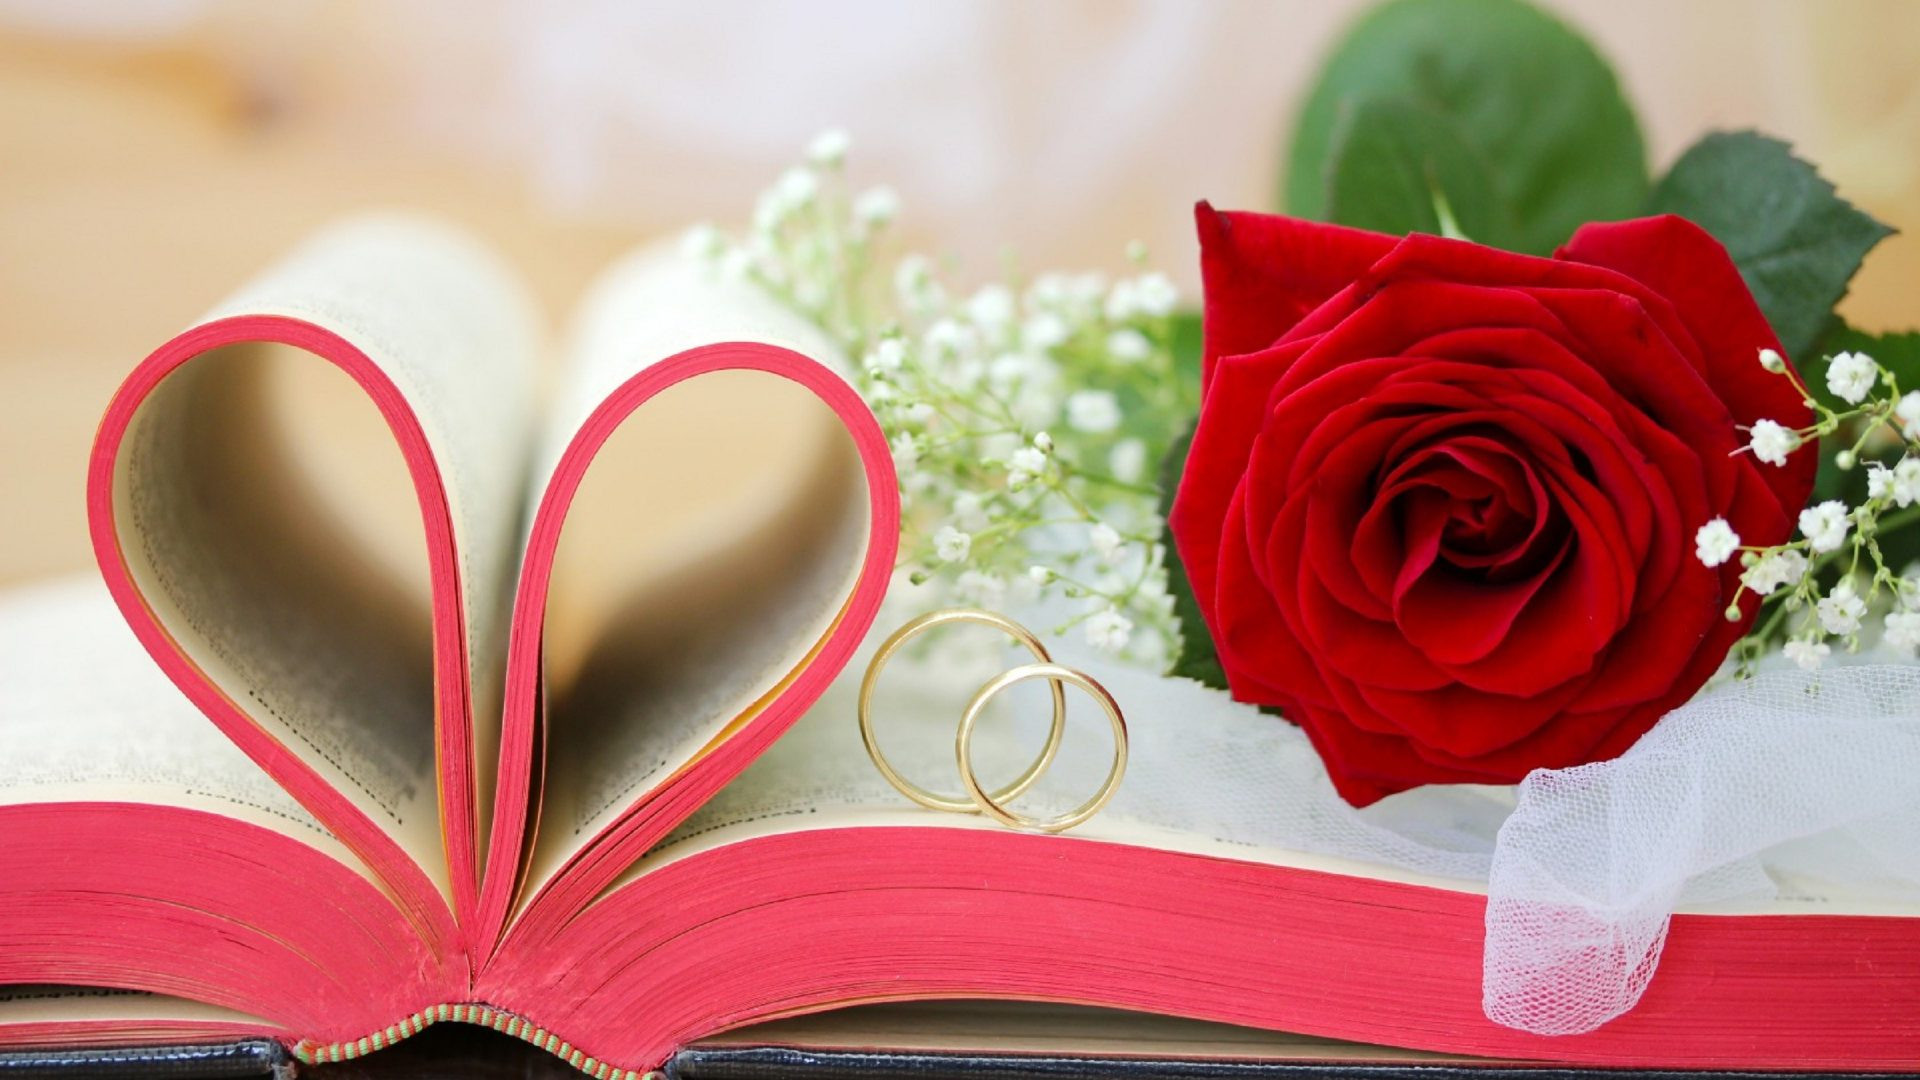 Book-Tag-Roses-Love-Still-Beauty-Heart-Colors-Lovely-Valentine-Seasons-Day-Rings-Creative-February-wallpaper-wpc5803008